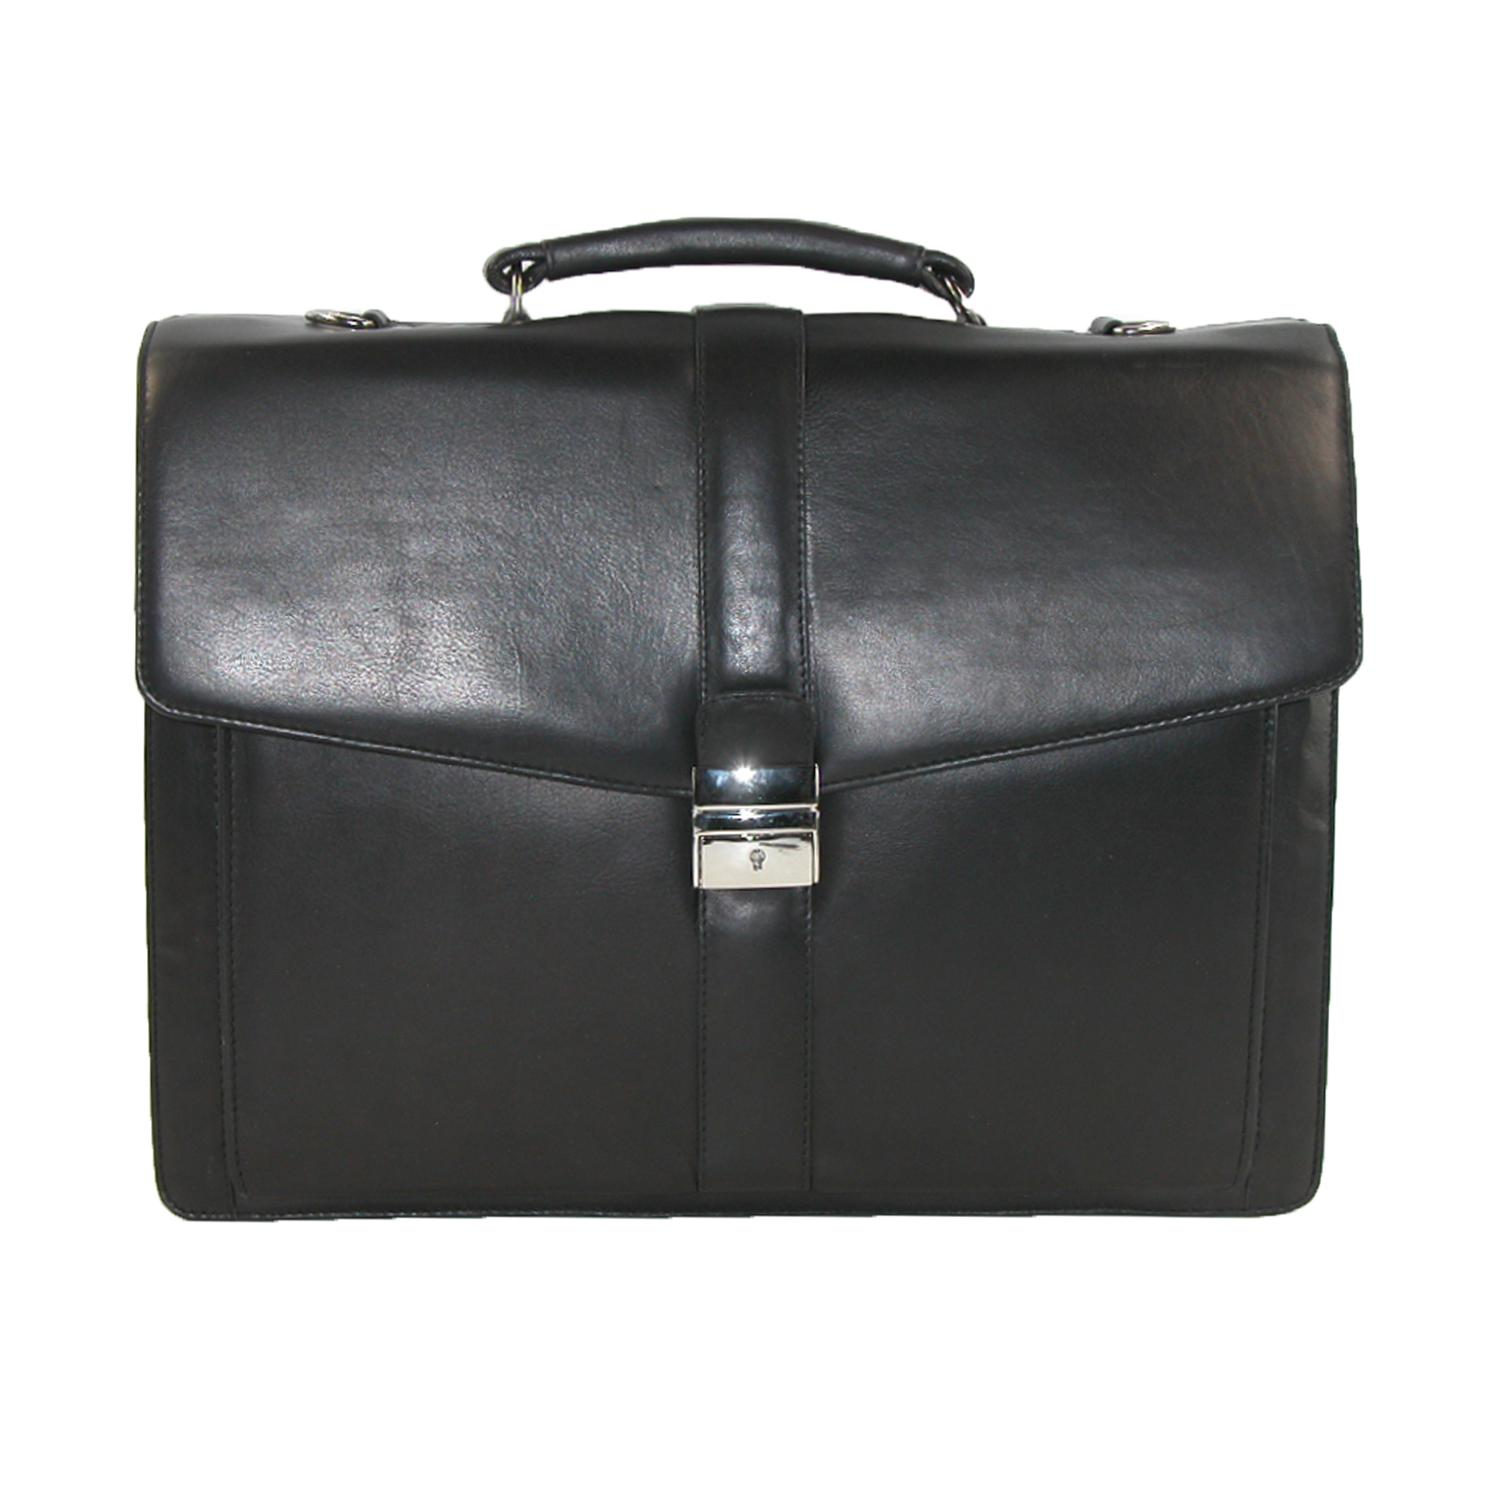 7052fc1e5633 Details about New CTM Men's Leather Laptop Portfolio Briefcase